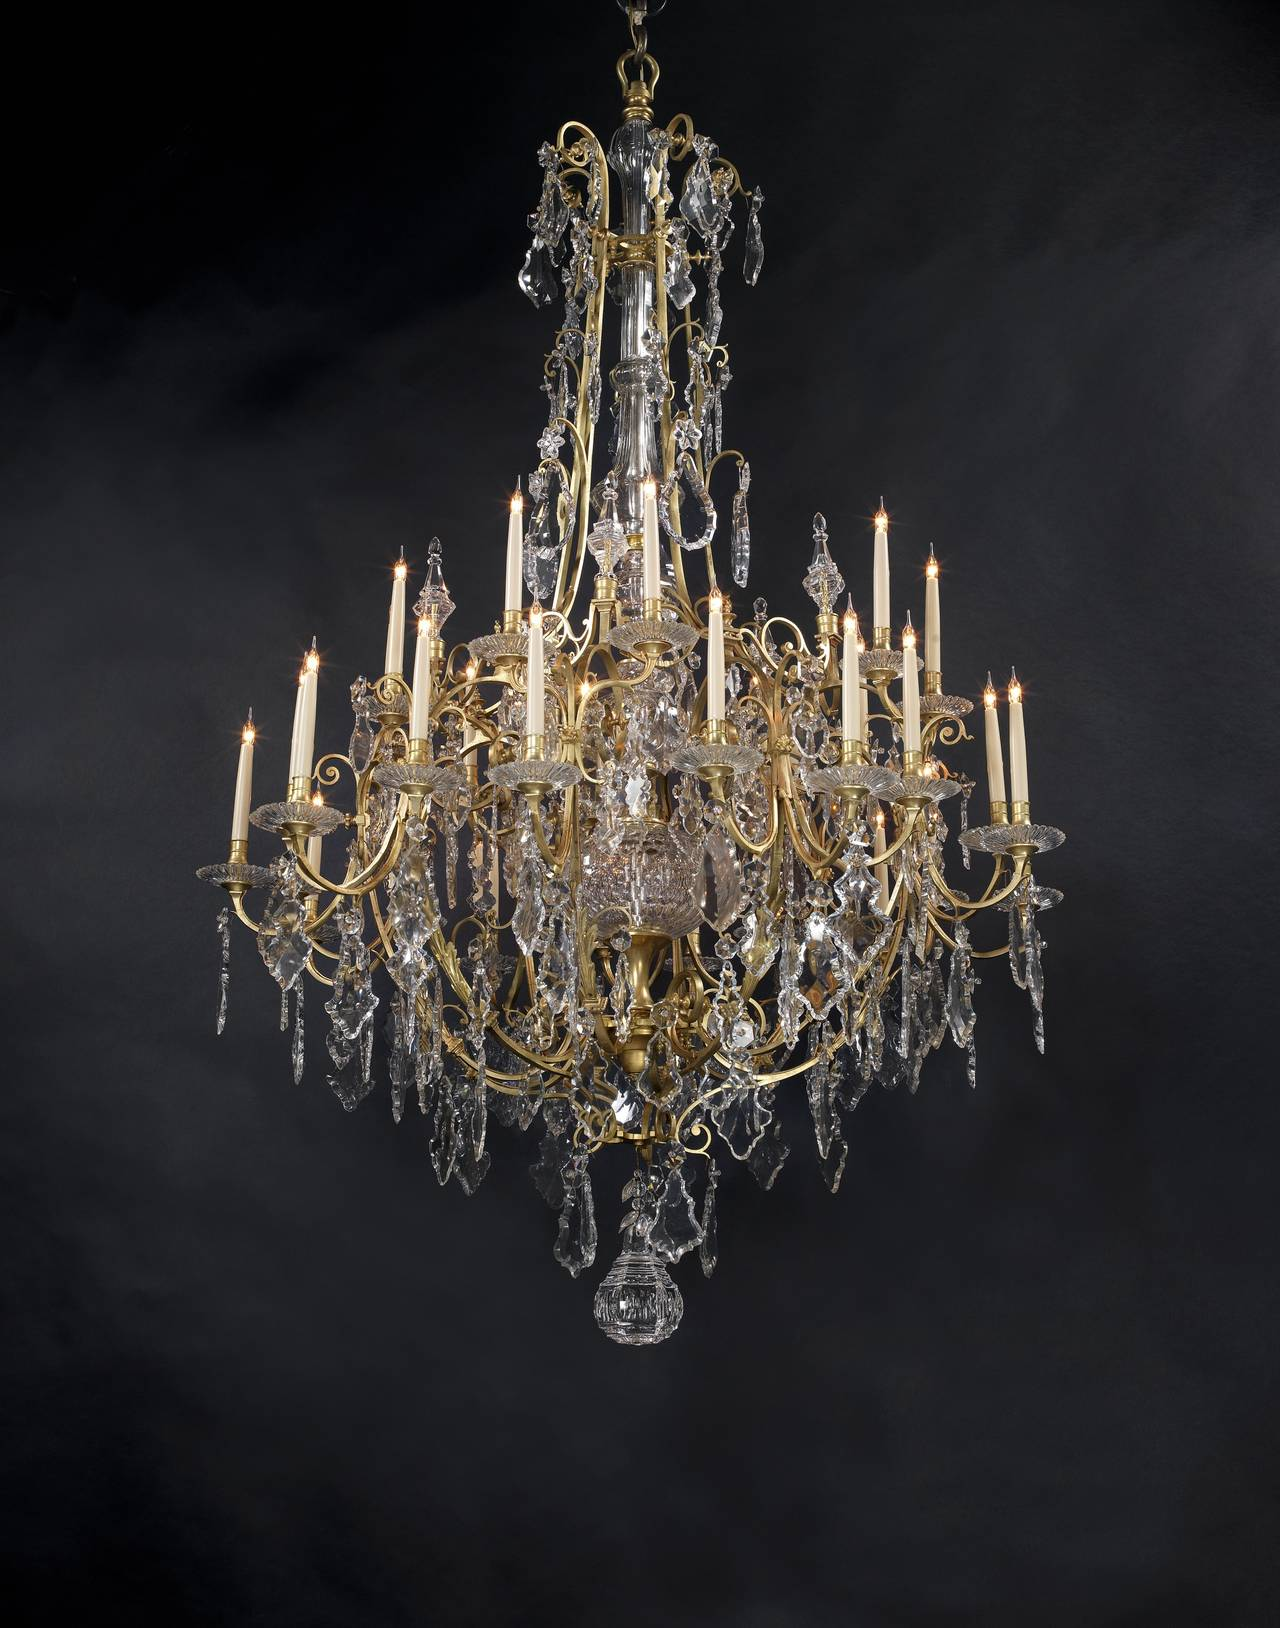 Large louis xv style thirty light cage chandelier for sale at 1stdibs large louis xv style thirty light cage chandelier 3 arubaitofo Gallery